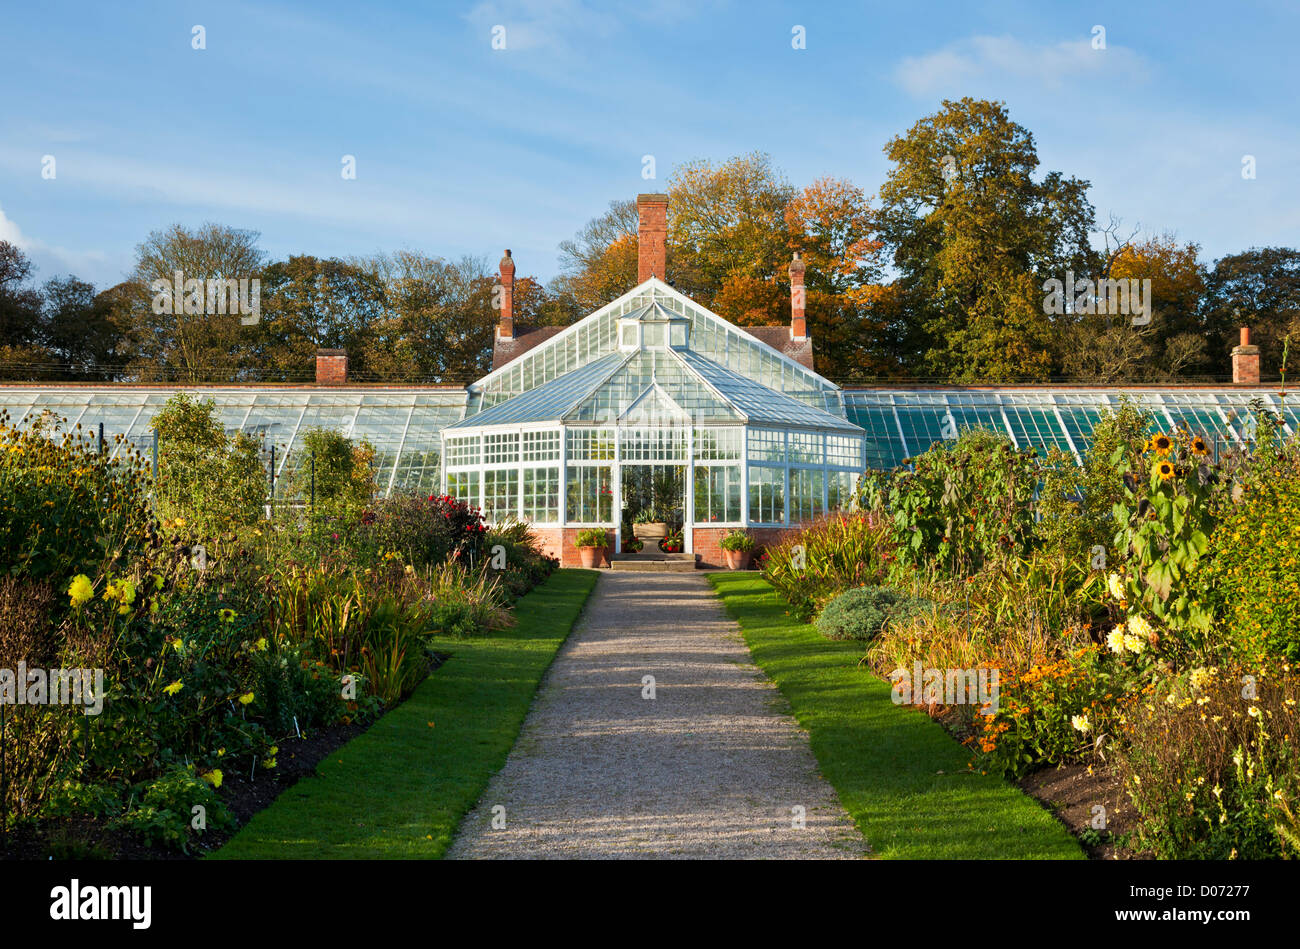 The huge renovated Victorian greenhouse in the walled garden at Clumber park Nottinghamshire England UK GB EU Europe - Stock Image